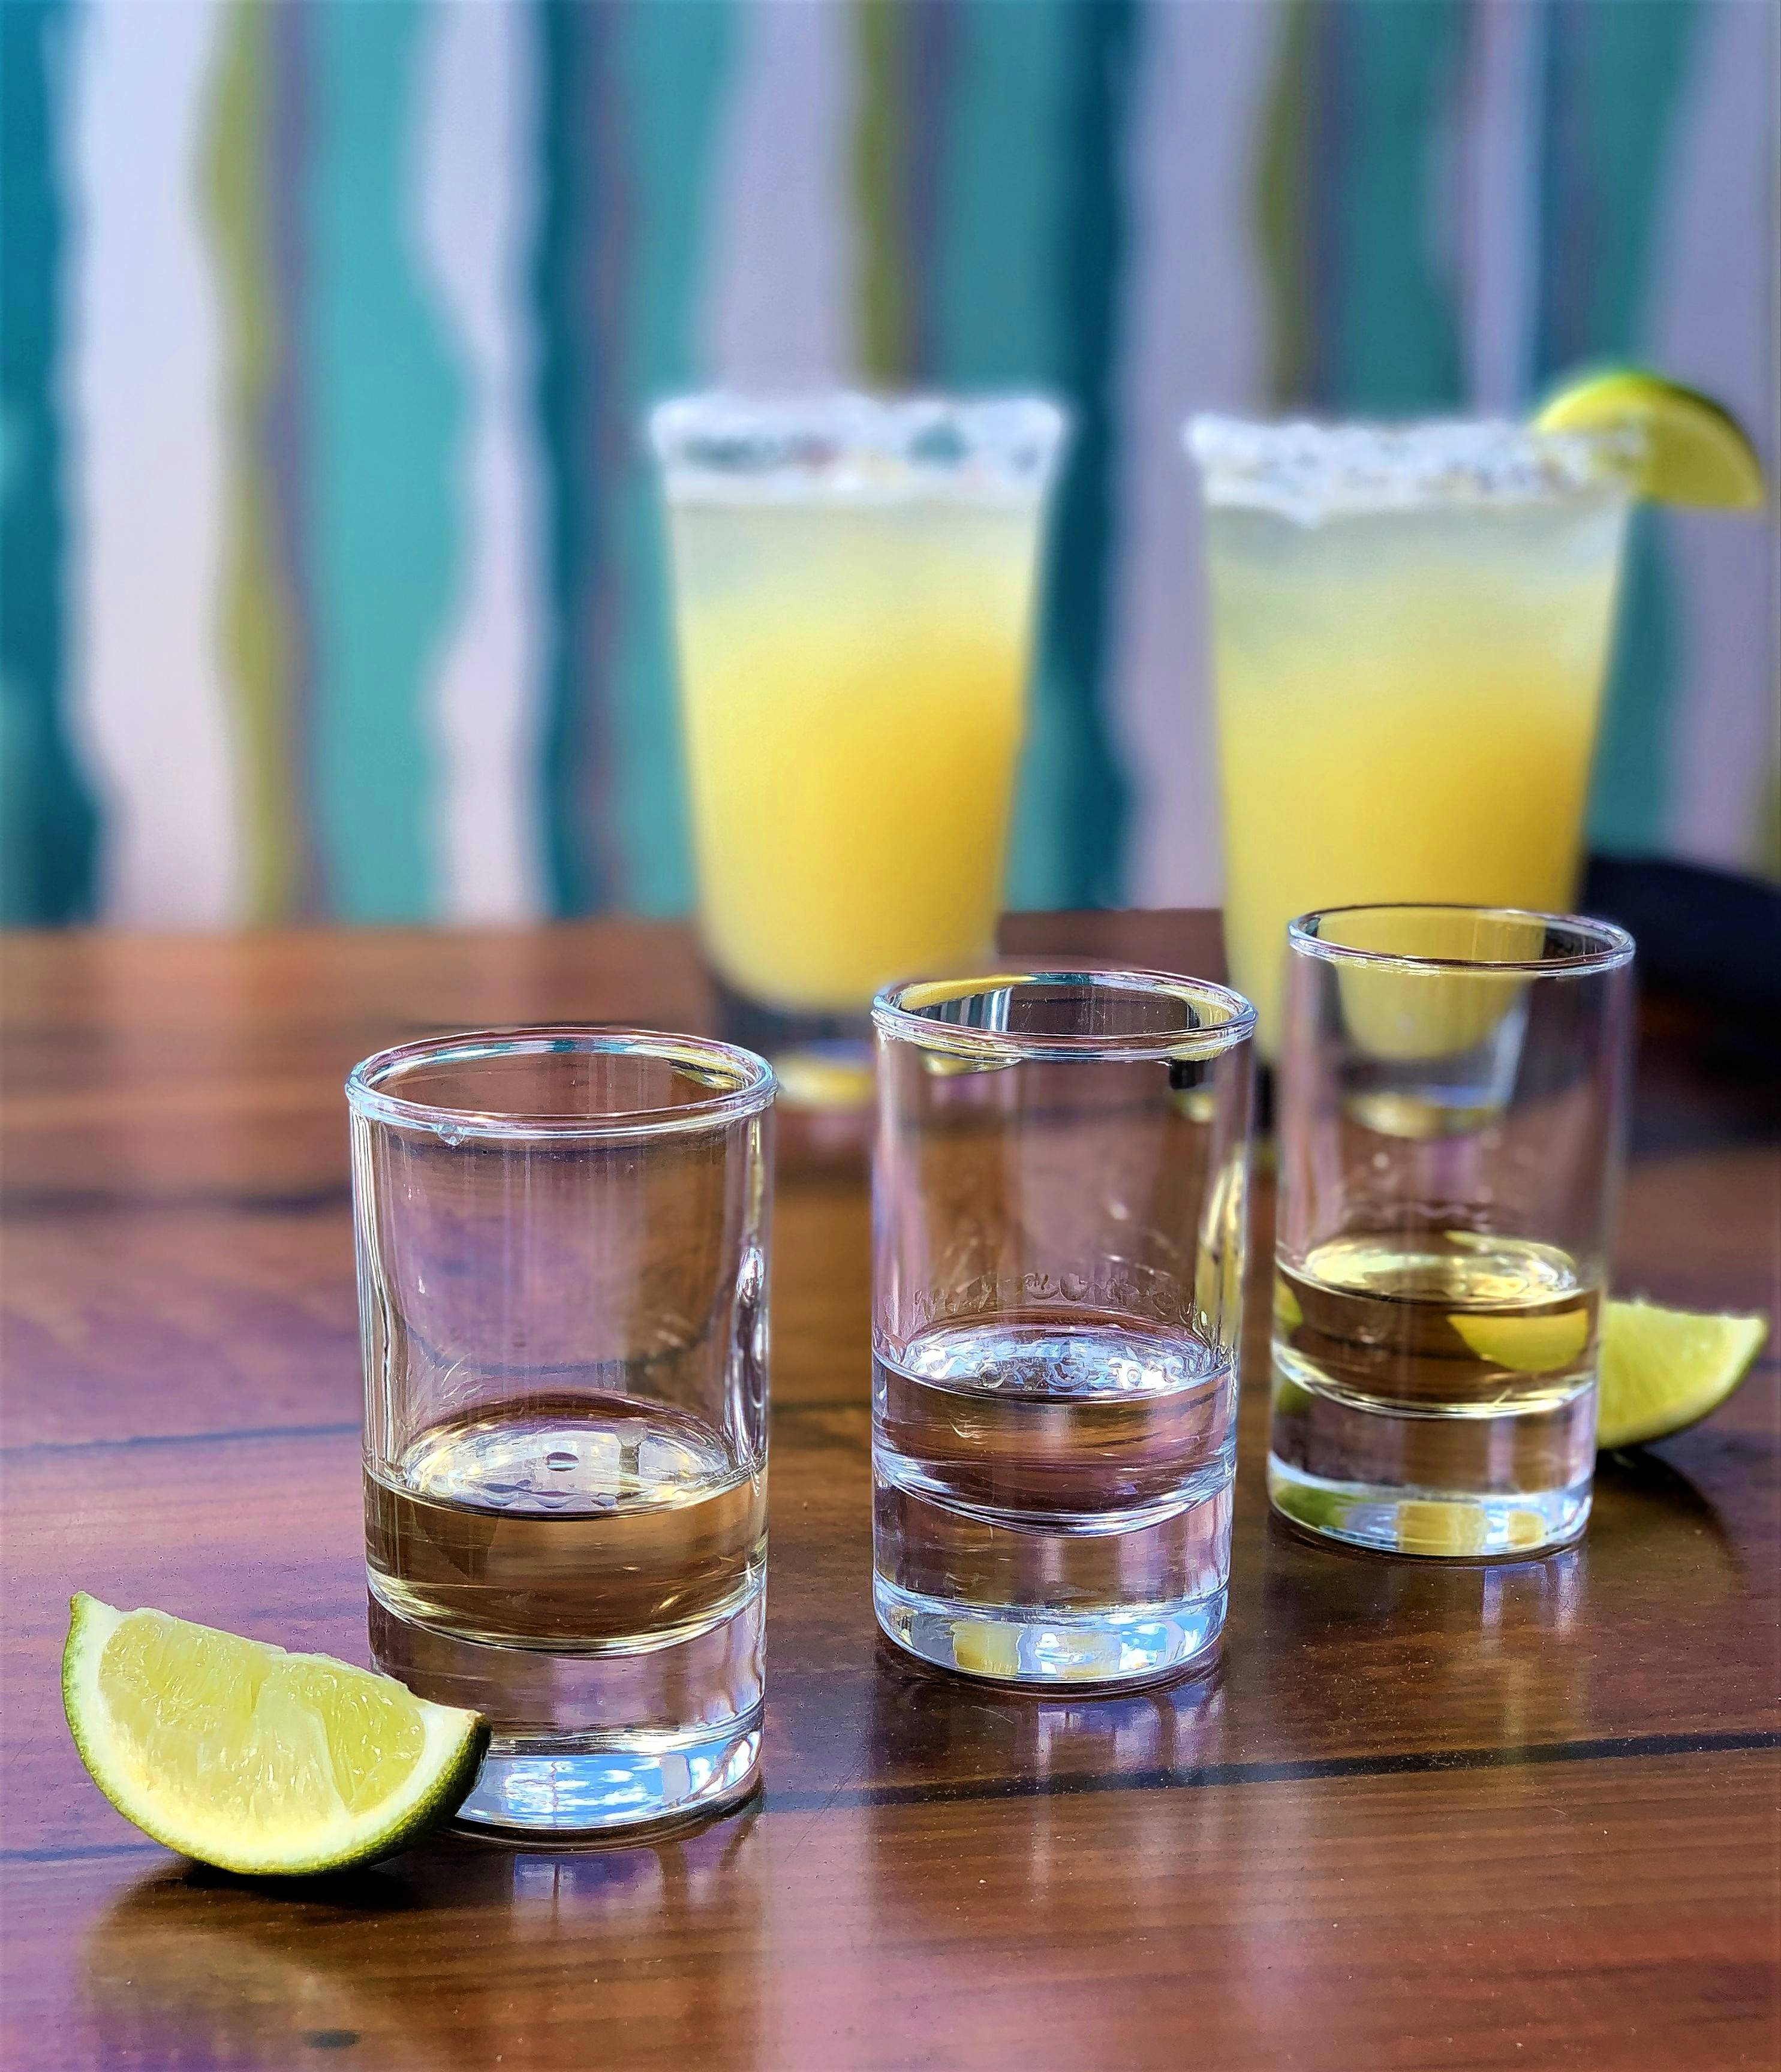 Create-your-own tequila flights are $10 from April 28 through May 5 at Bahama Breeze.